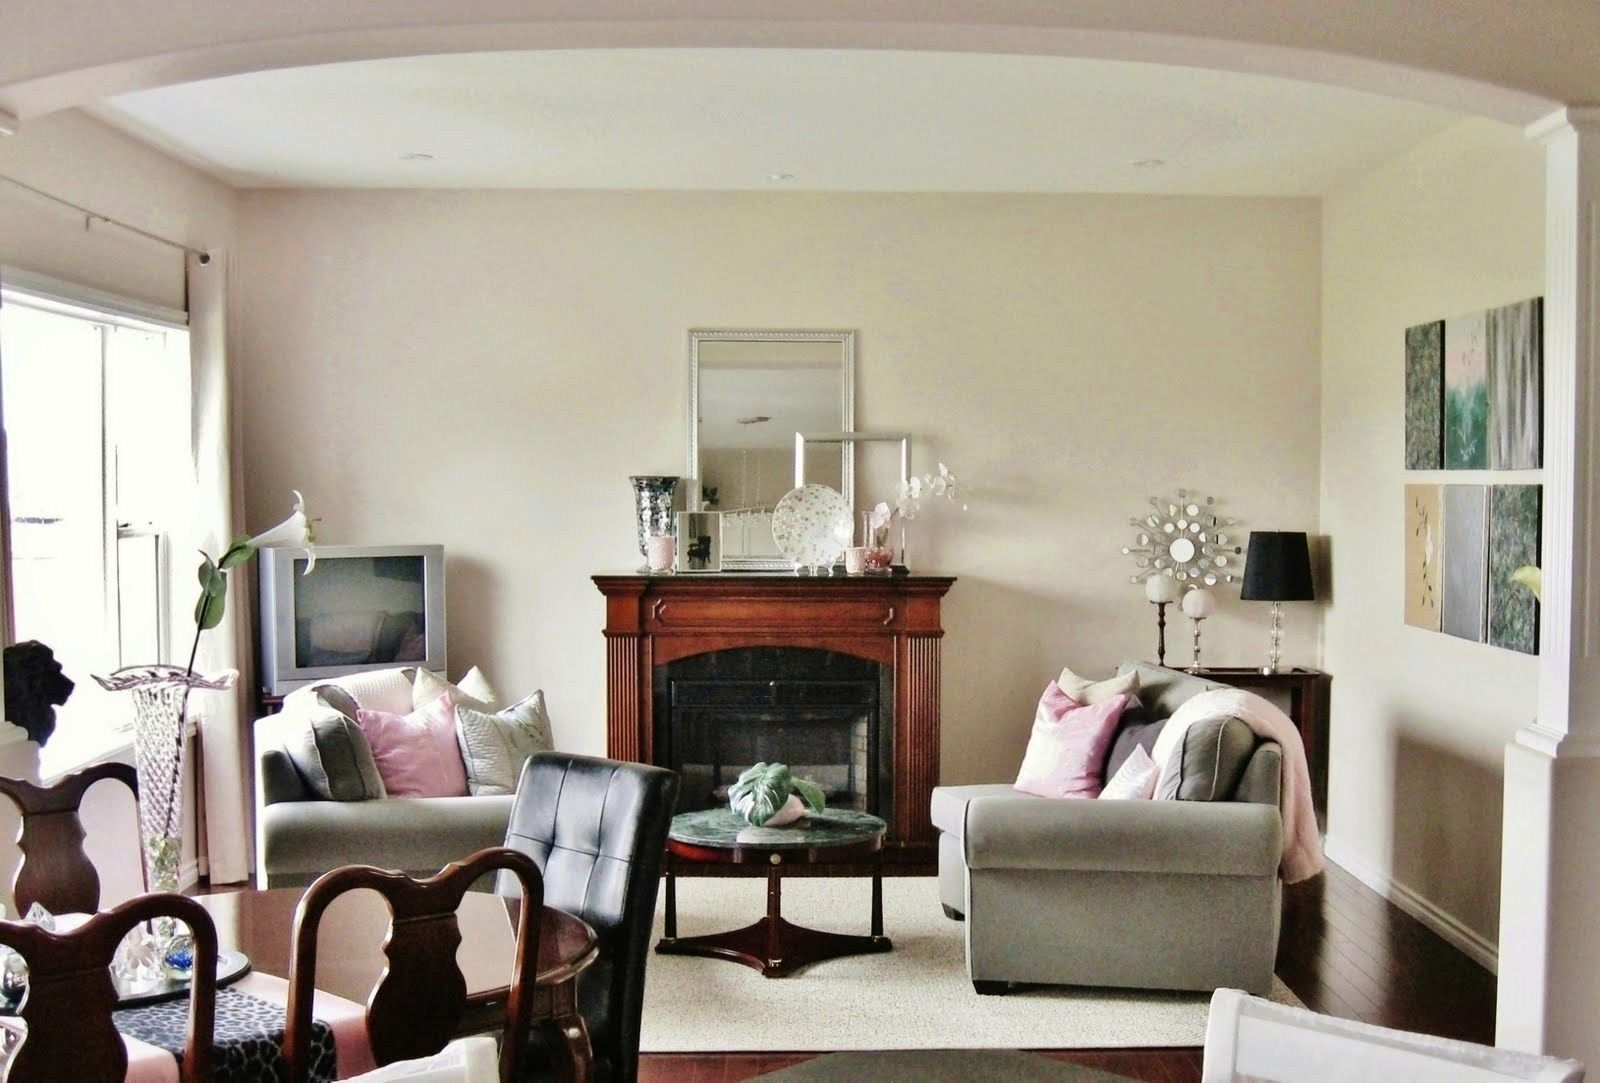 47 Old Fashioned How To Decorate Living Room Ideas Decortez Family Room Decorating Home Living Room Paint Colors For Living Room